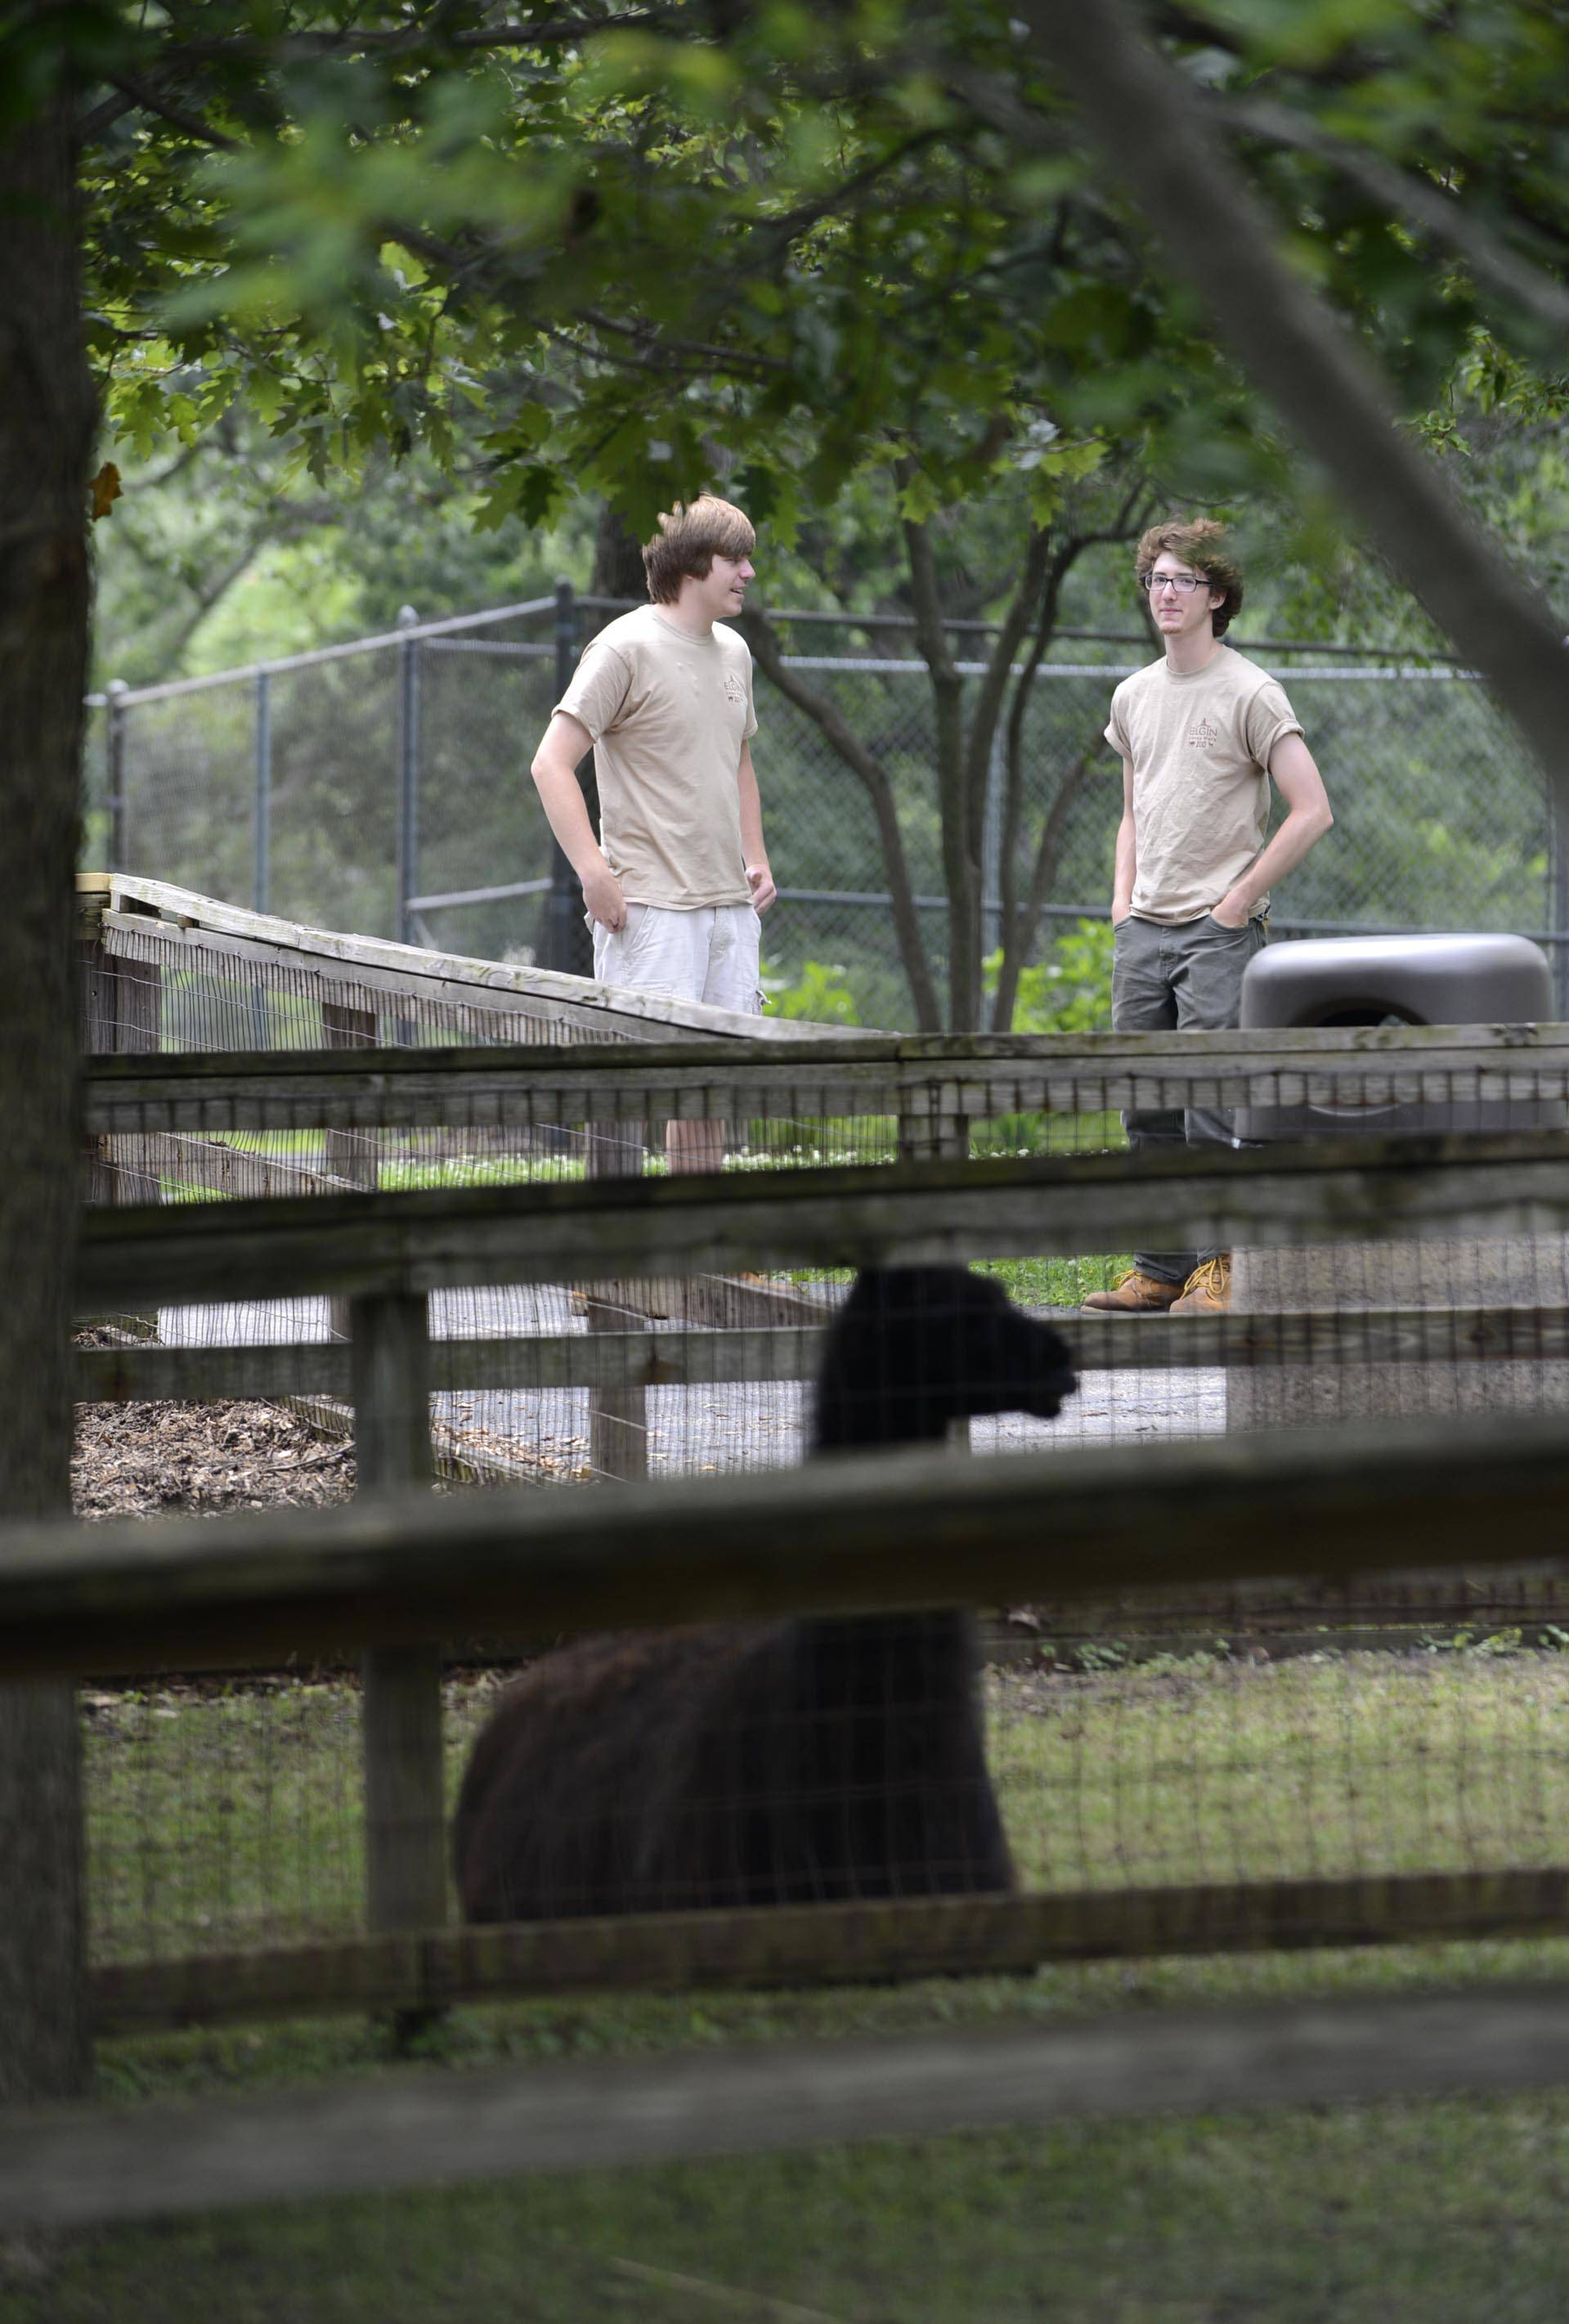 Nick Cetera and Jonah Schemn, both Elgin summer employees, watch the animals as visitors walk around the free Lords Park Farm Zoo. Cetera and Schemn prepare the grounds and animals for visitors each day.